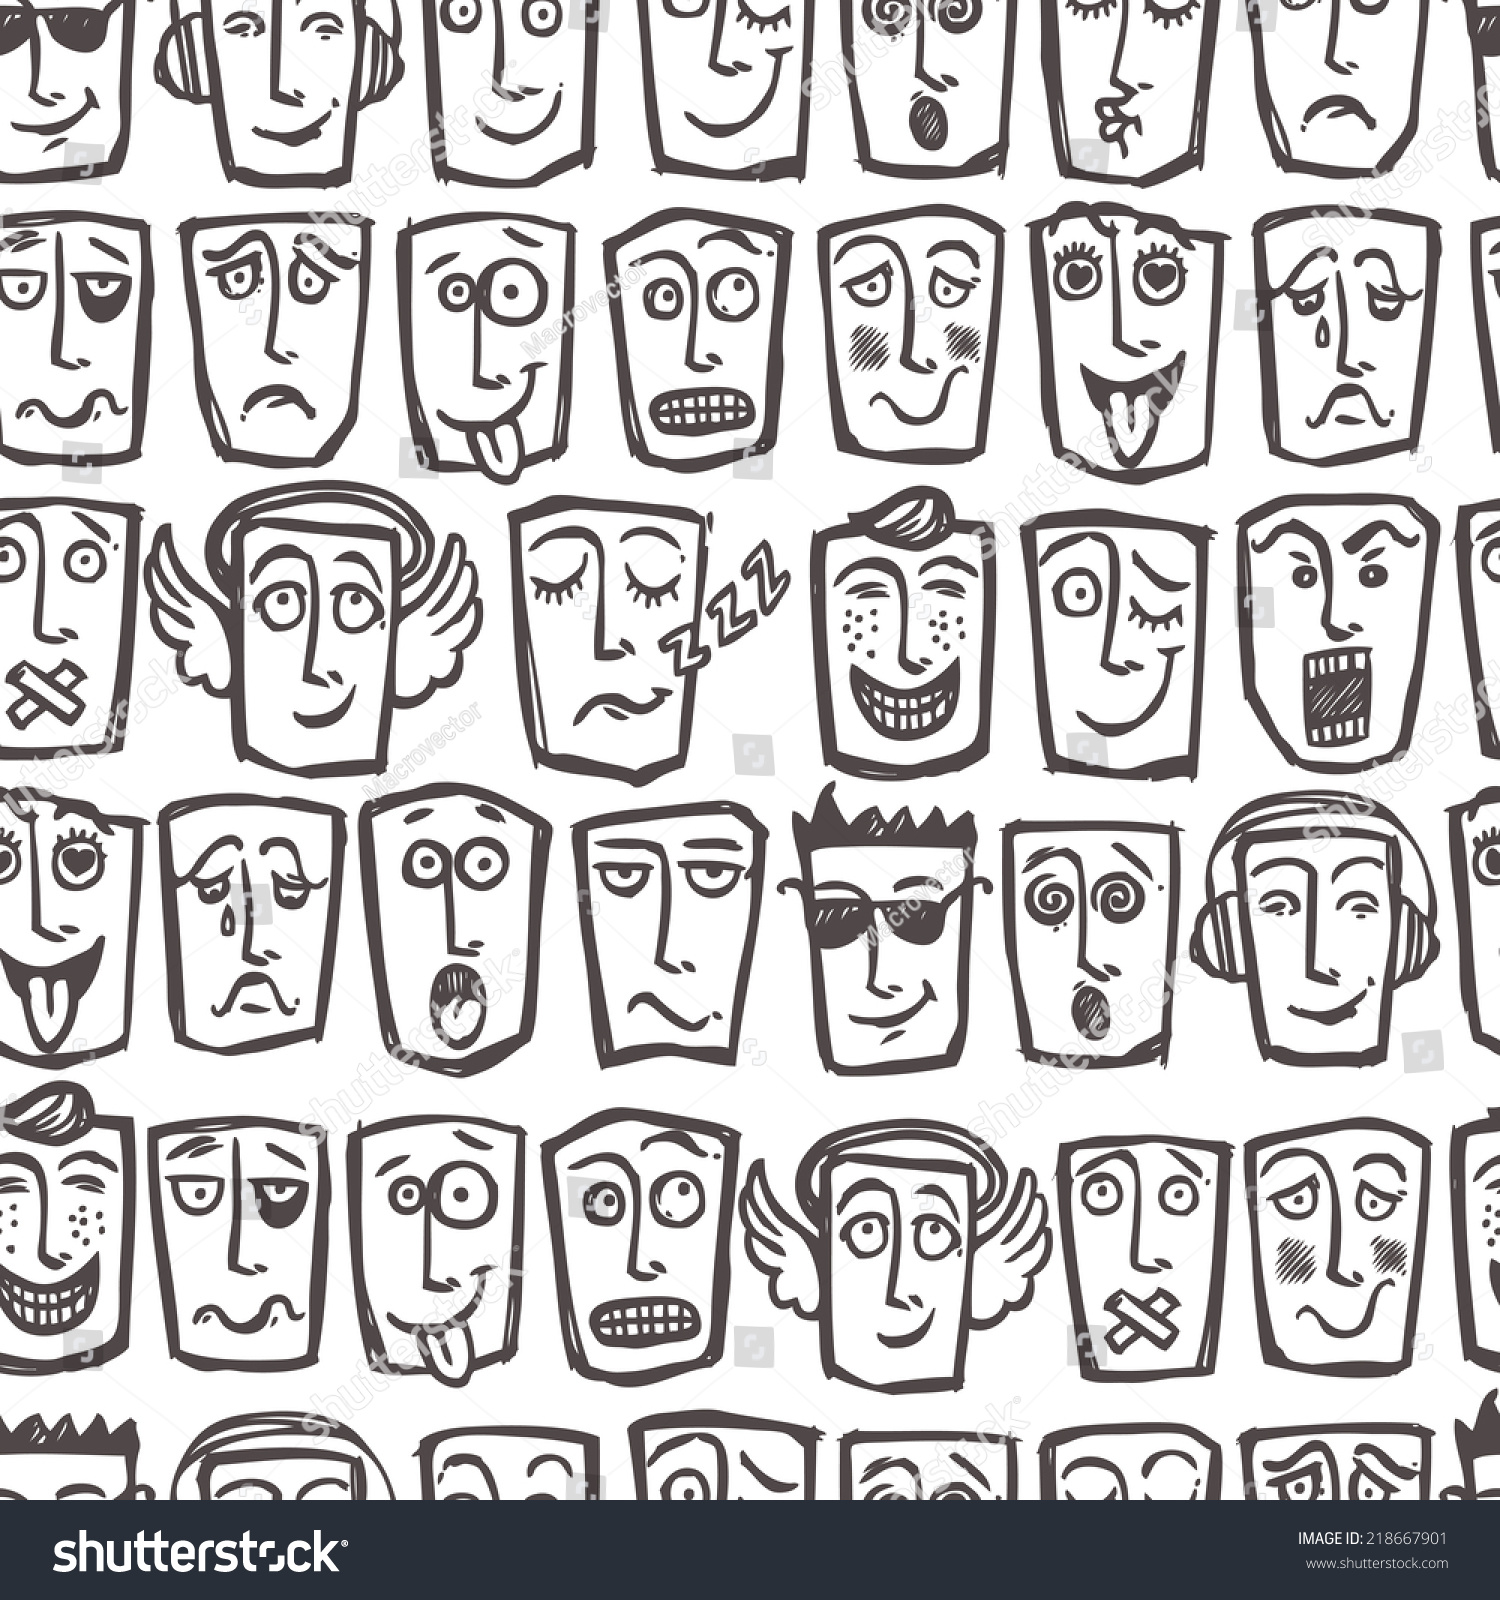 Sketch emoticons man face expressions and character seamless pattern vector illustration